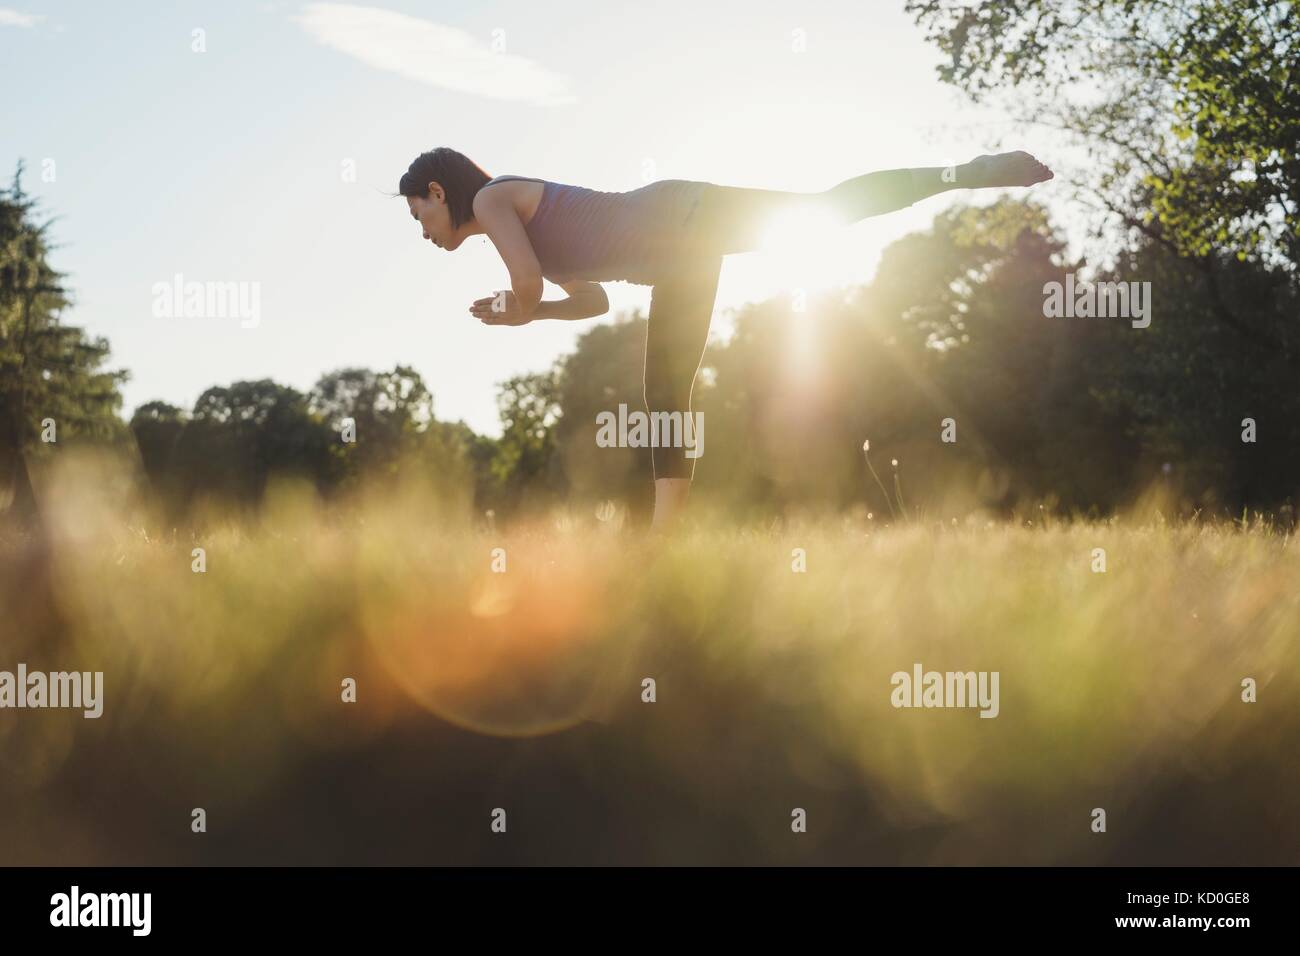 Mature Woman in park, en équilibre sur une jambe, en position de yoga, low angle view Photo Stock